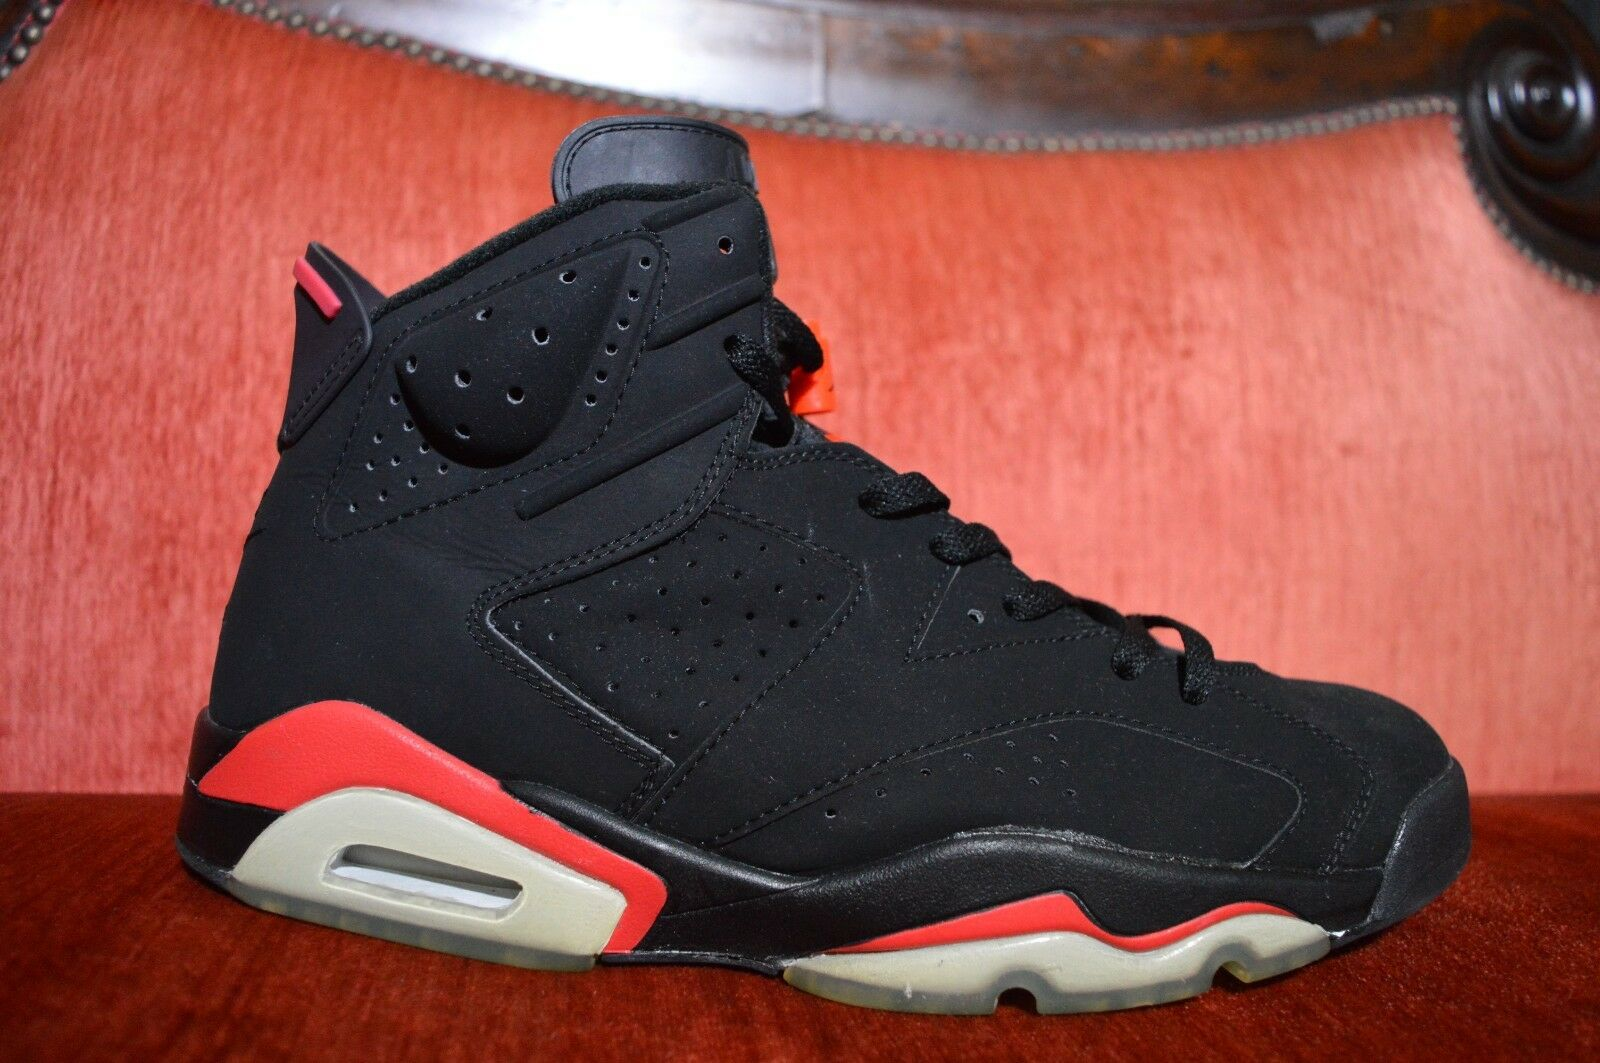 2000 Nike Air Jordan VI 6 Retro + BLACK DEEP INFRARED RED BRED 136038-061 12